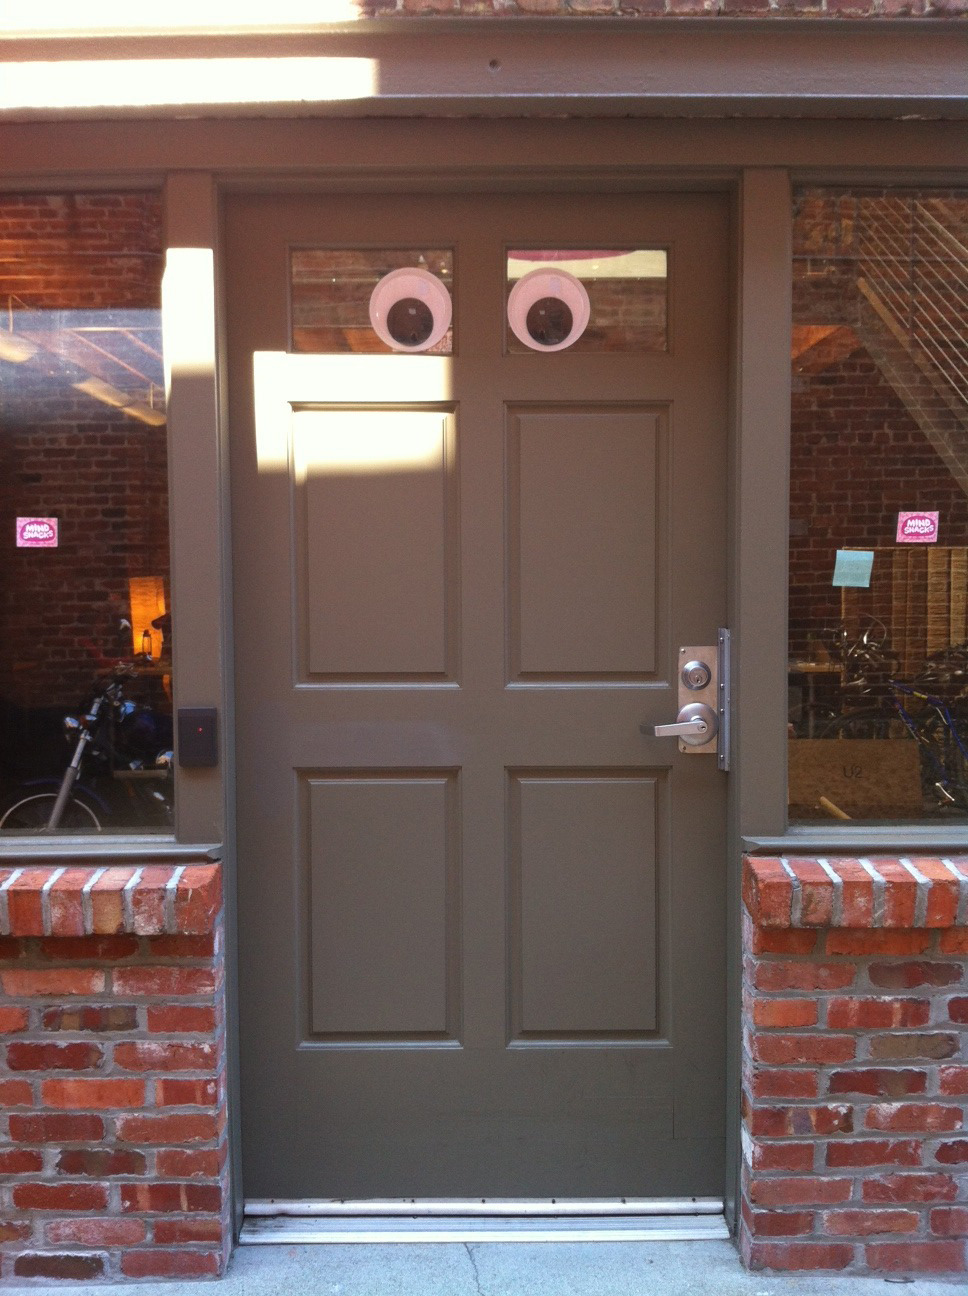 Our new googly eye'd security system at Mindsnacks is 100% adorable and 100% ineffective!